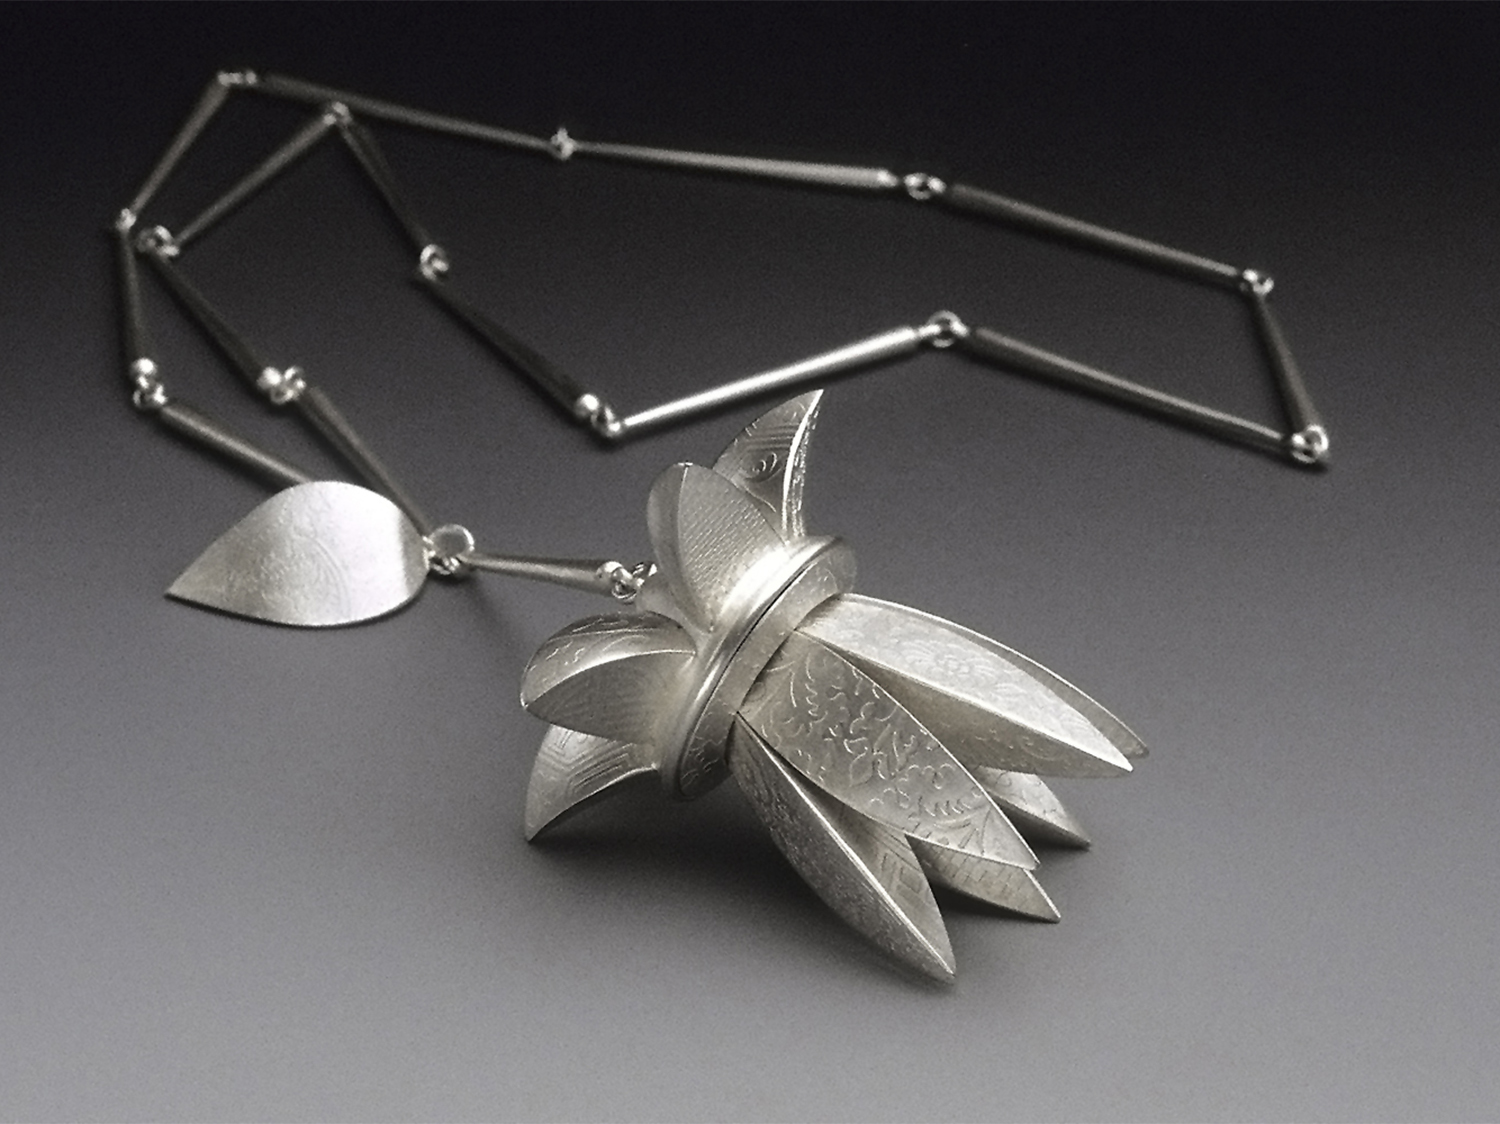 Flower Pendant  |  2000  |  sterling silver  |  3.125 x 2.675 x 2.675 inches